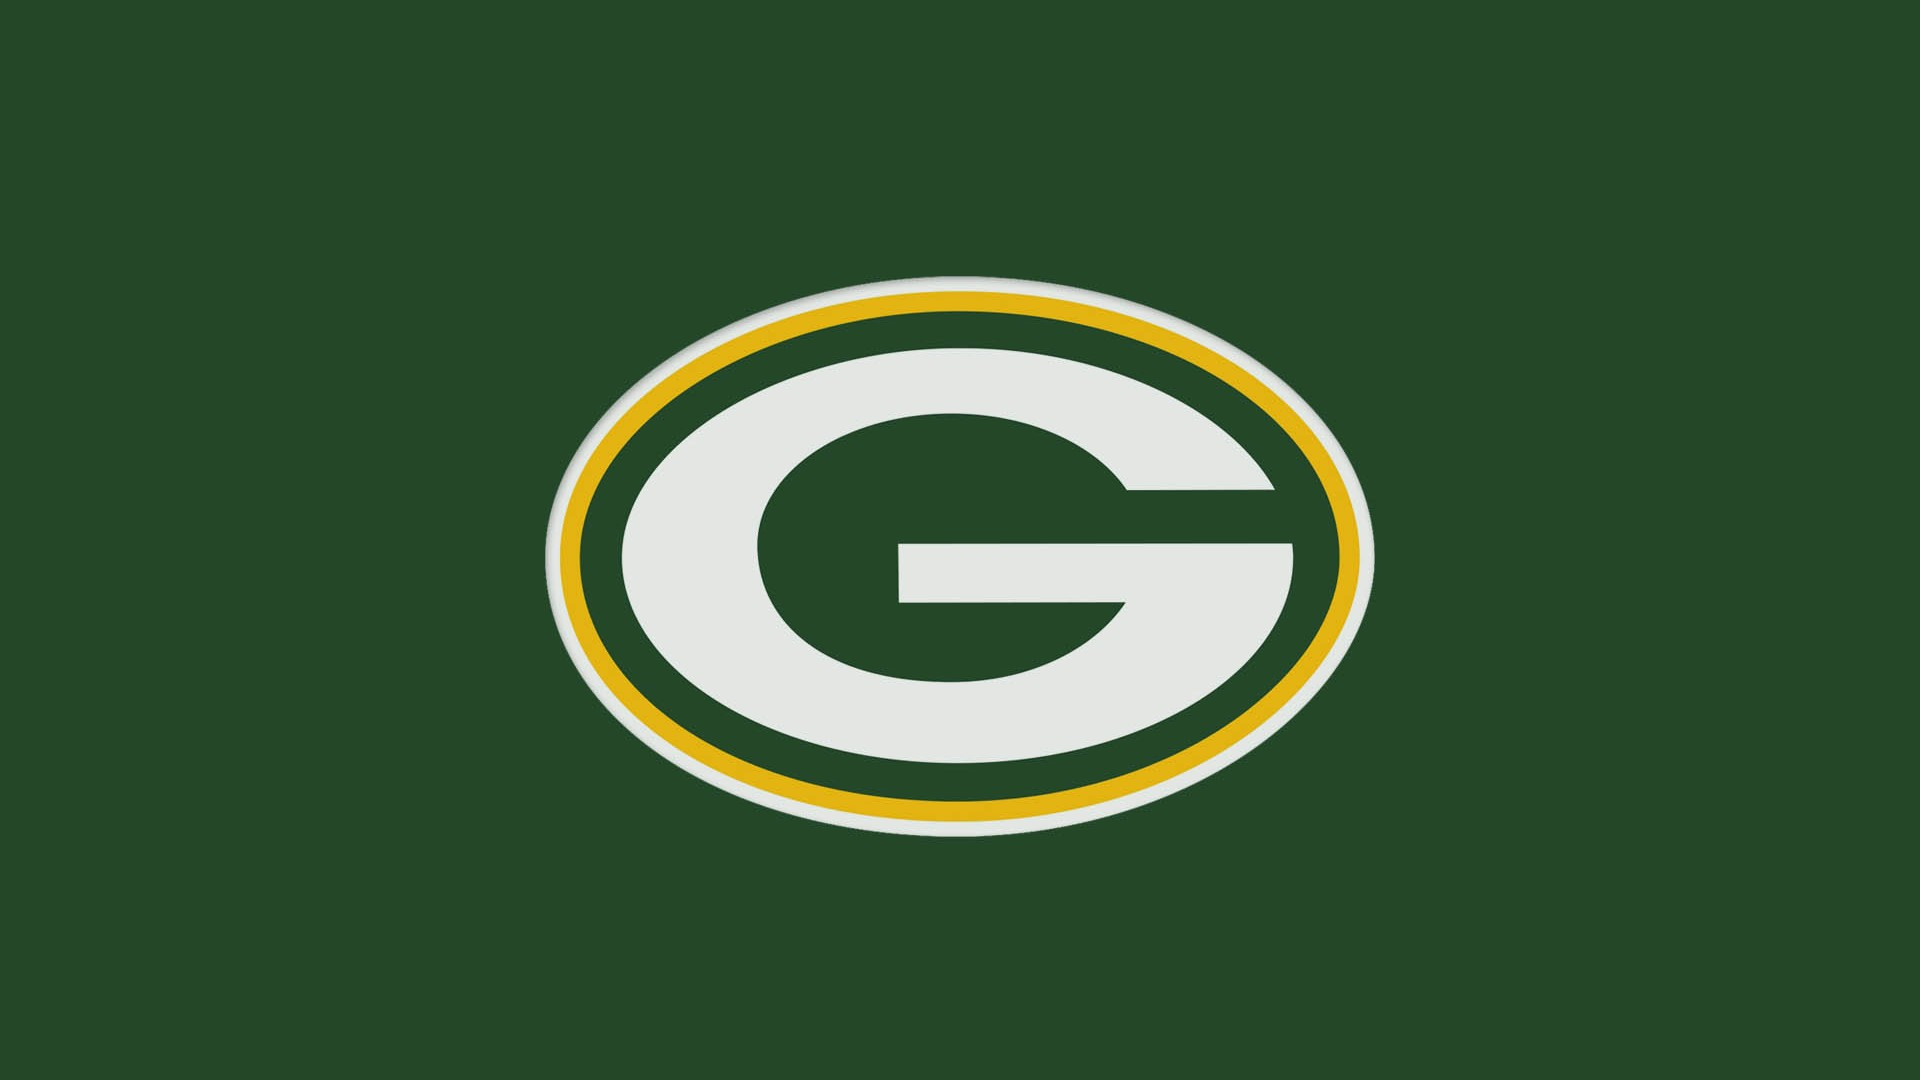 Windows Wallpaper Green Bay Packers 2020 Nfl Football Wallpapers